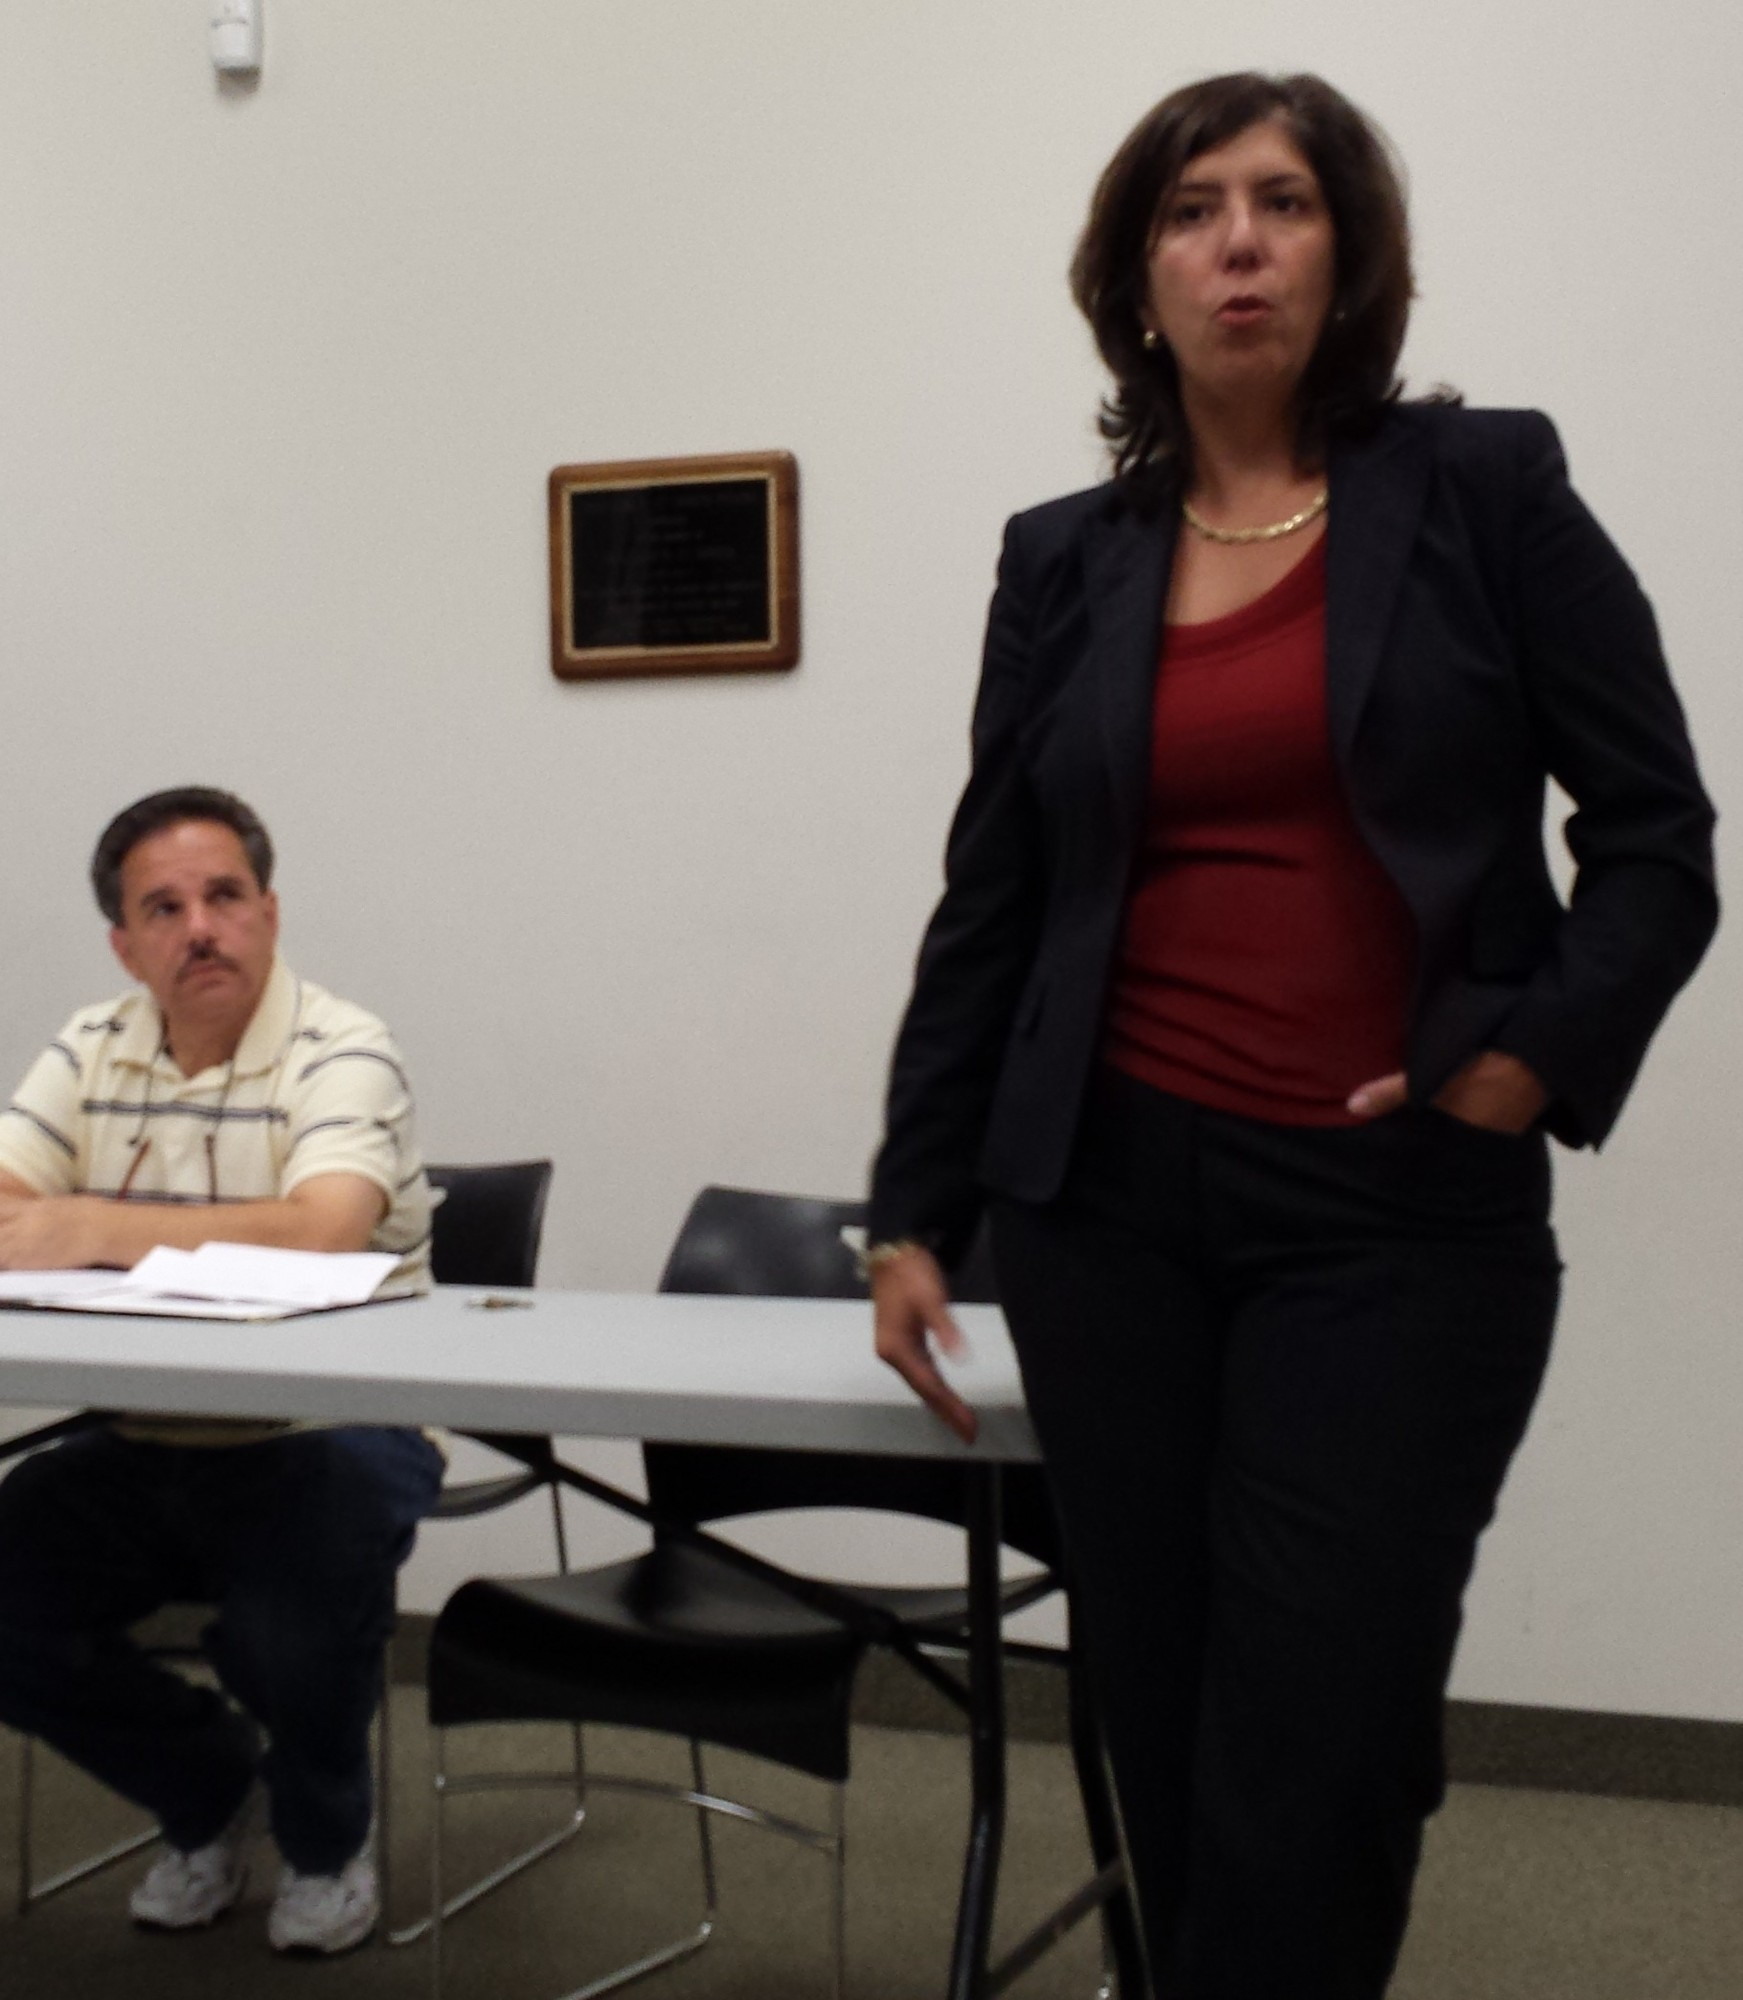 Chief Assistant District Attorney Madeline Singas visited Elmont Library on Sept. 3 and addressed community concerns about safety as Elmont East End President Patrick Nicolosi listened.